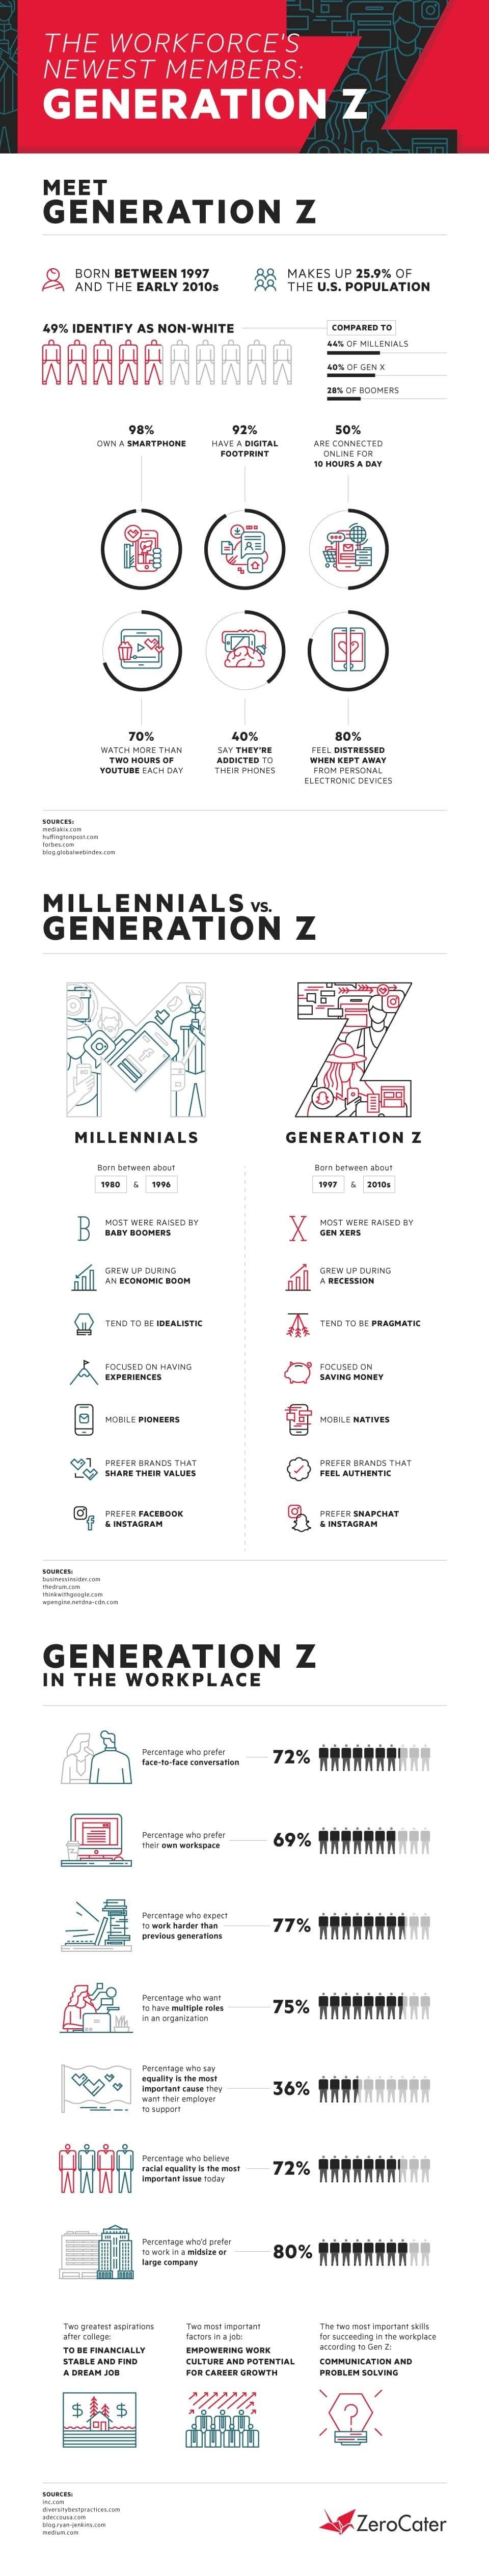 The Workforce's Newest Members: Generation Z #infographic